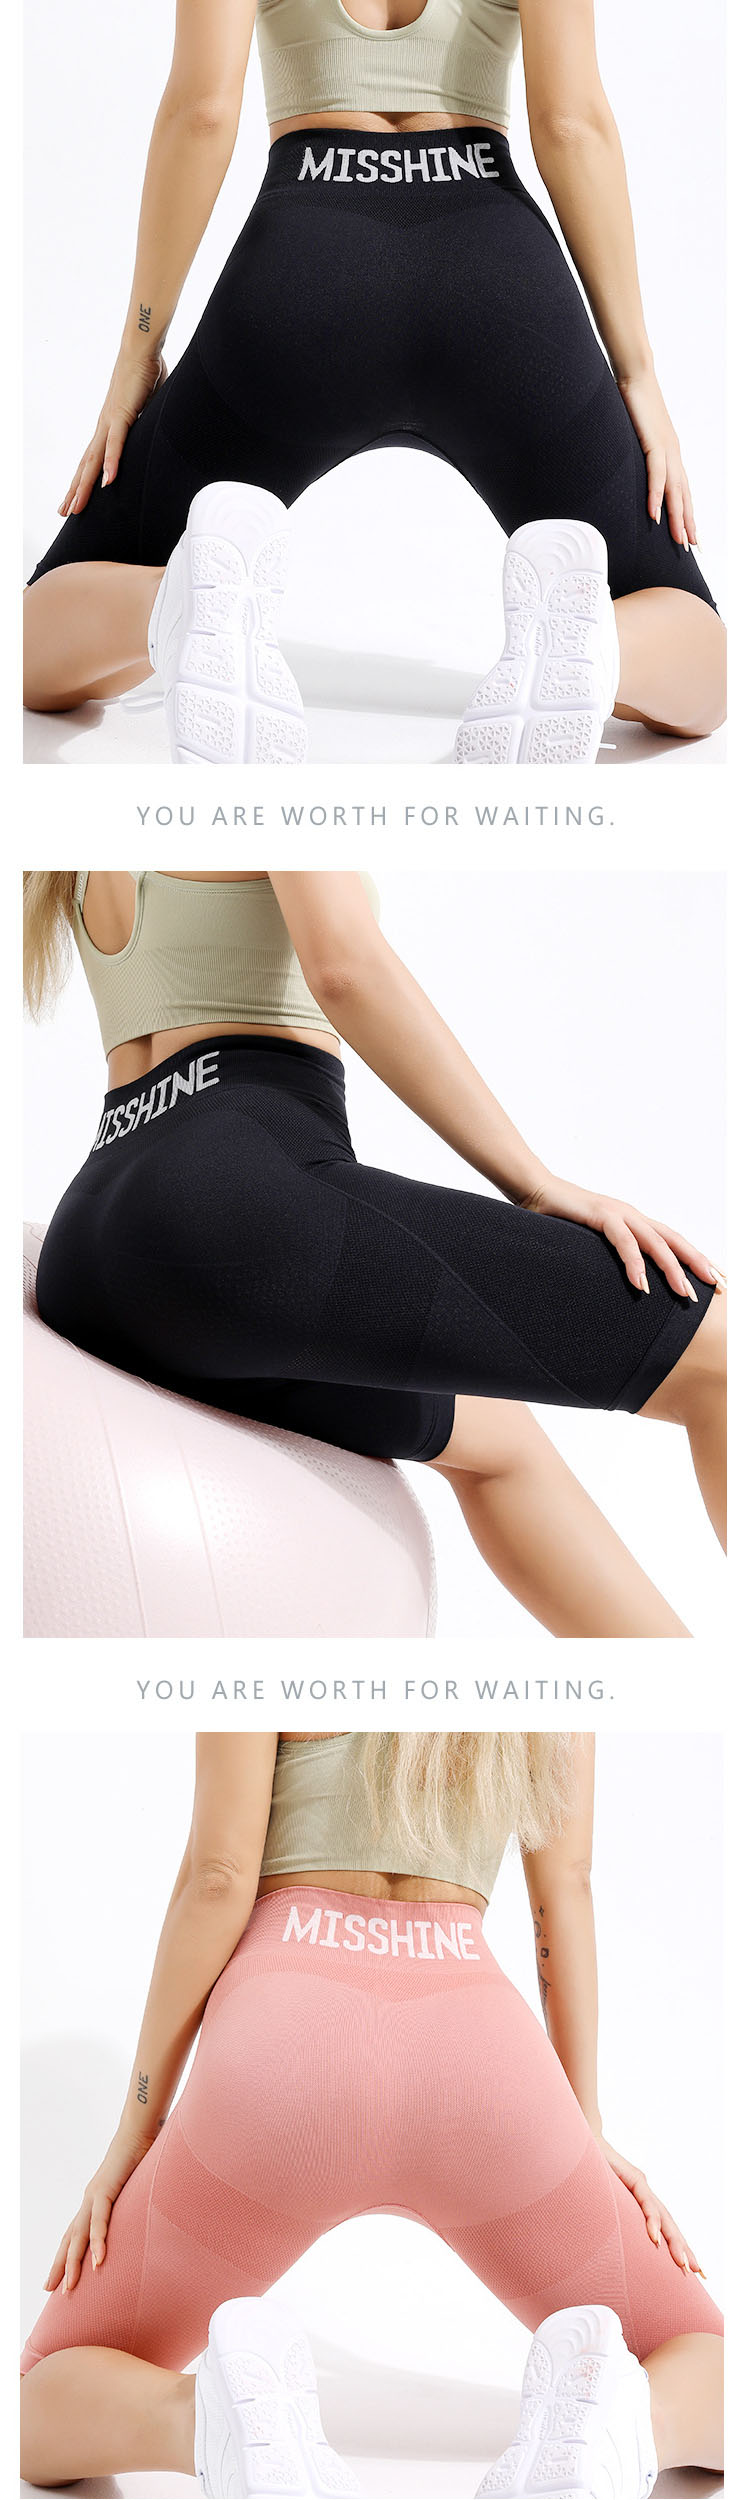 Curved hip design, so that the hip curve is more round and perfect.